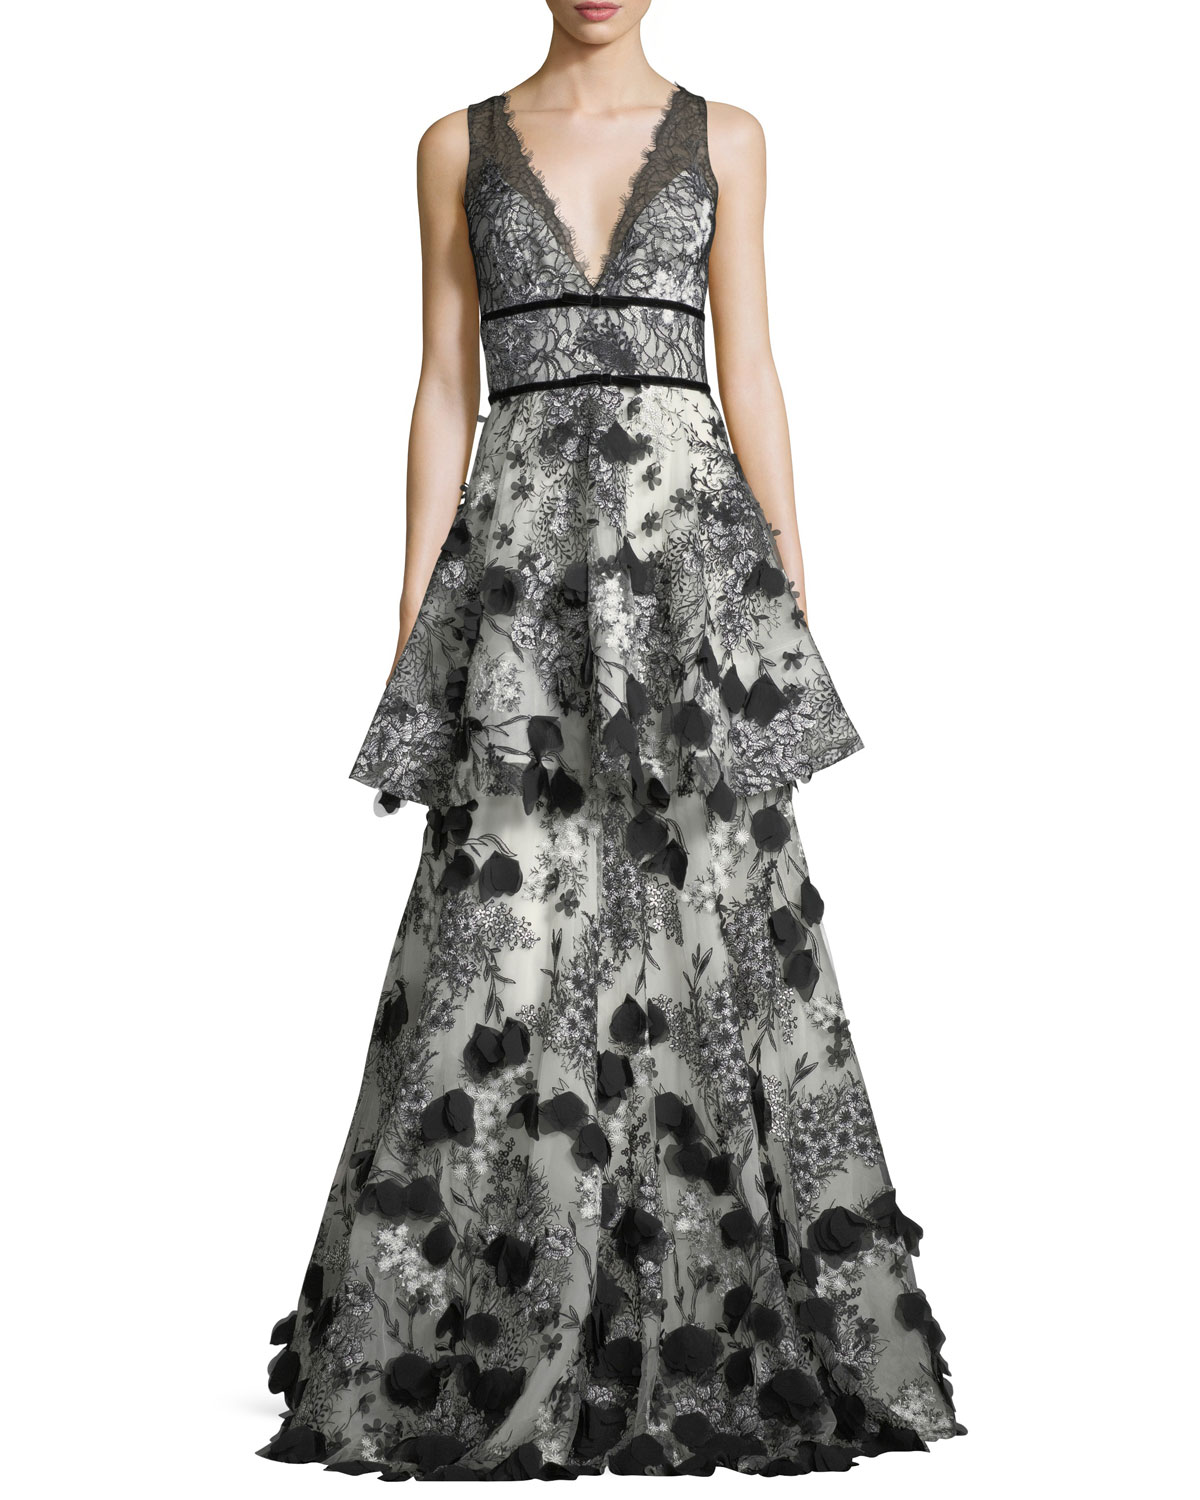 0dd97e05b5 Marchesa Notte Two-Tiered 3D Floral-Embellished Gown | Neiman Marcus